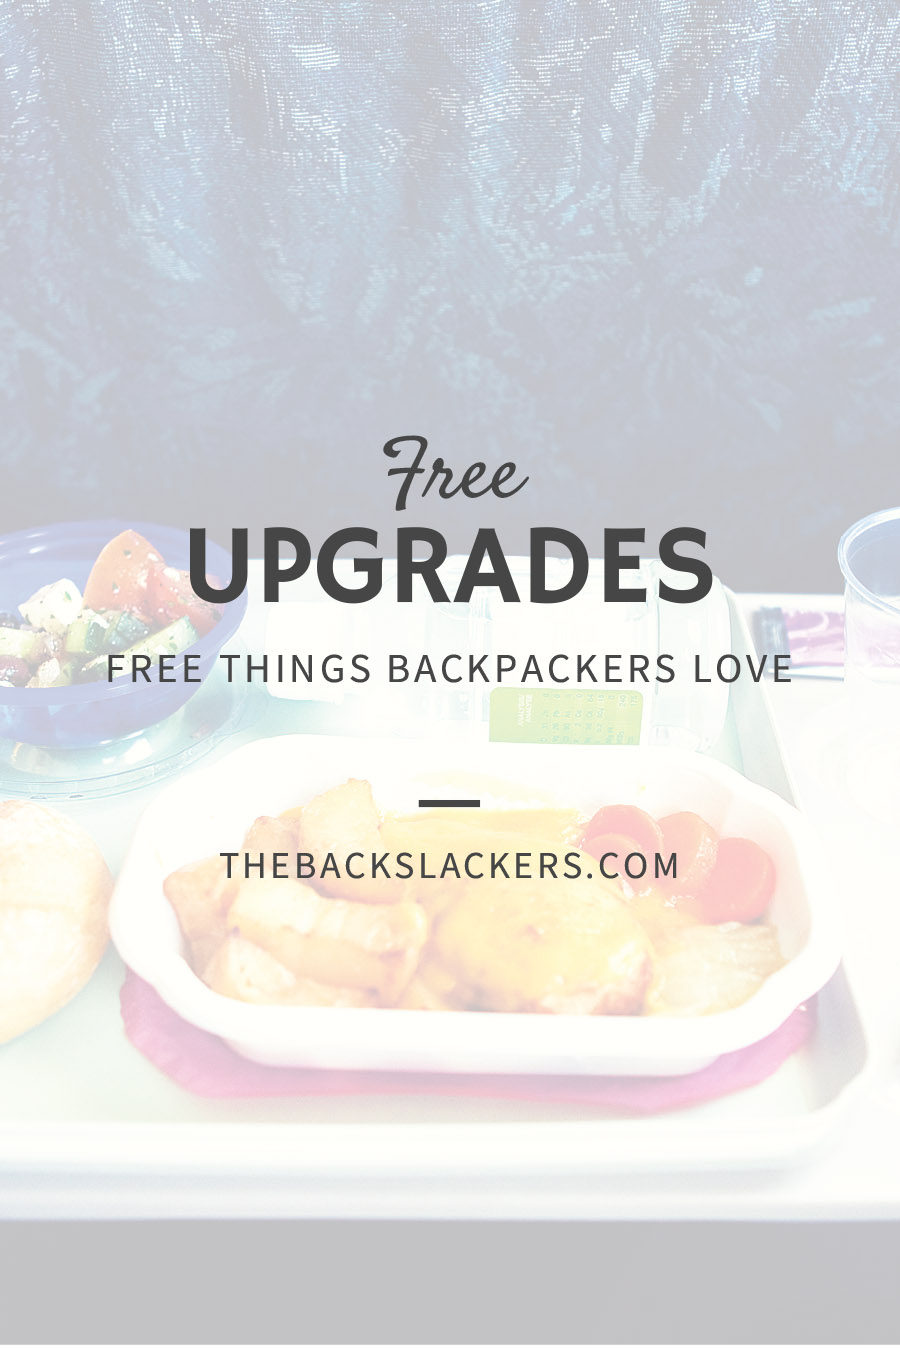 Free Things Backpackers Love - FREE UPGRADES